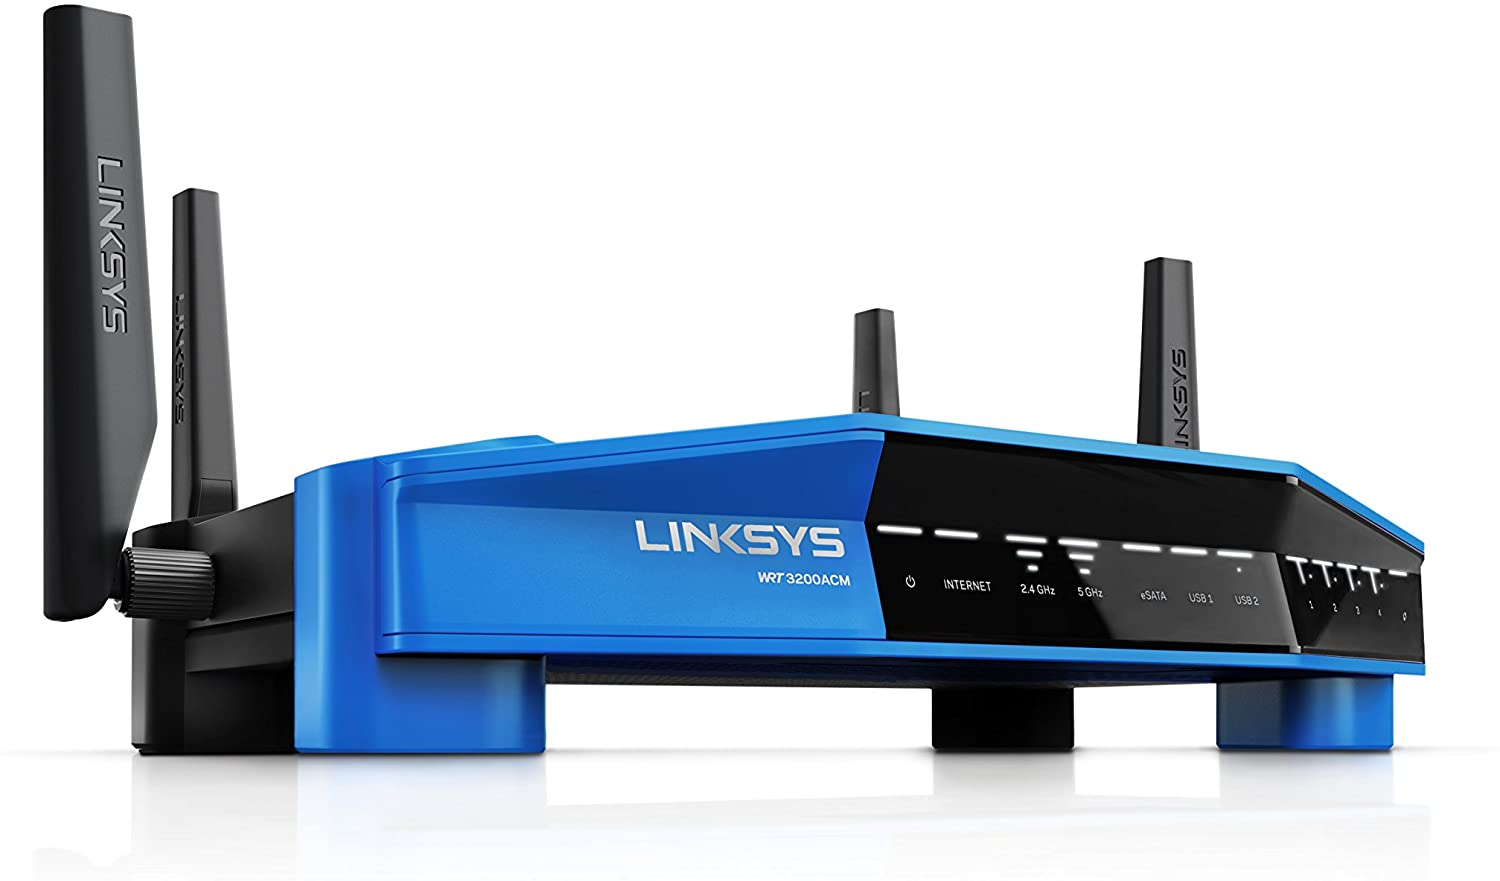 CyberGhost VPN Router Linksys WRT3200ACM Flashed DD-WRT Router